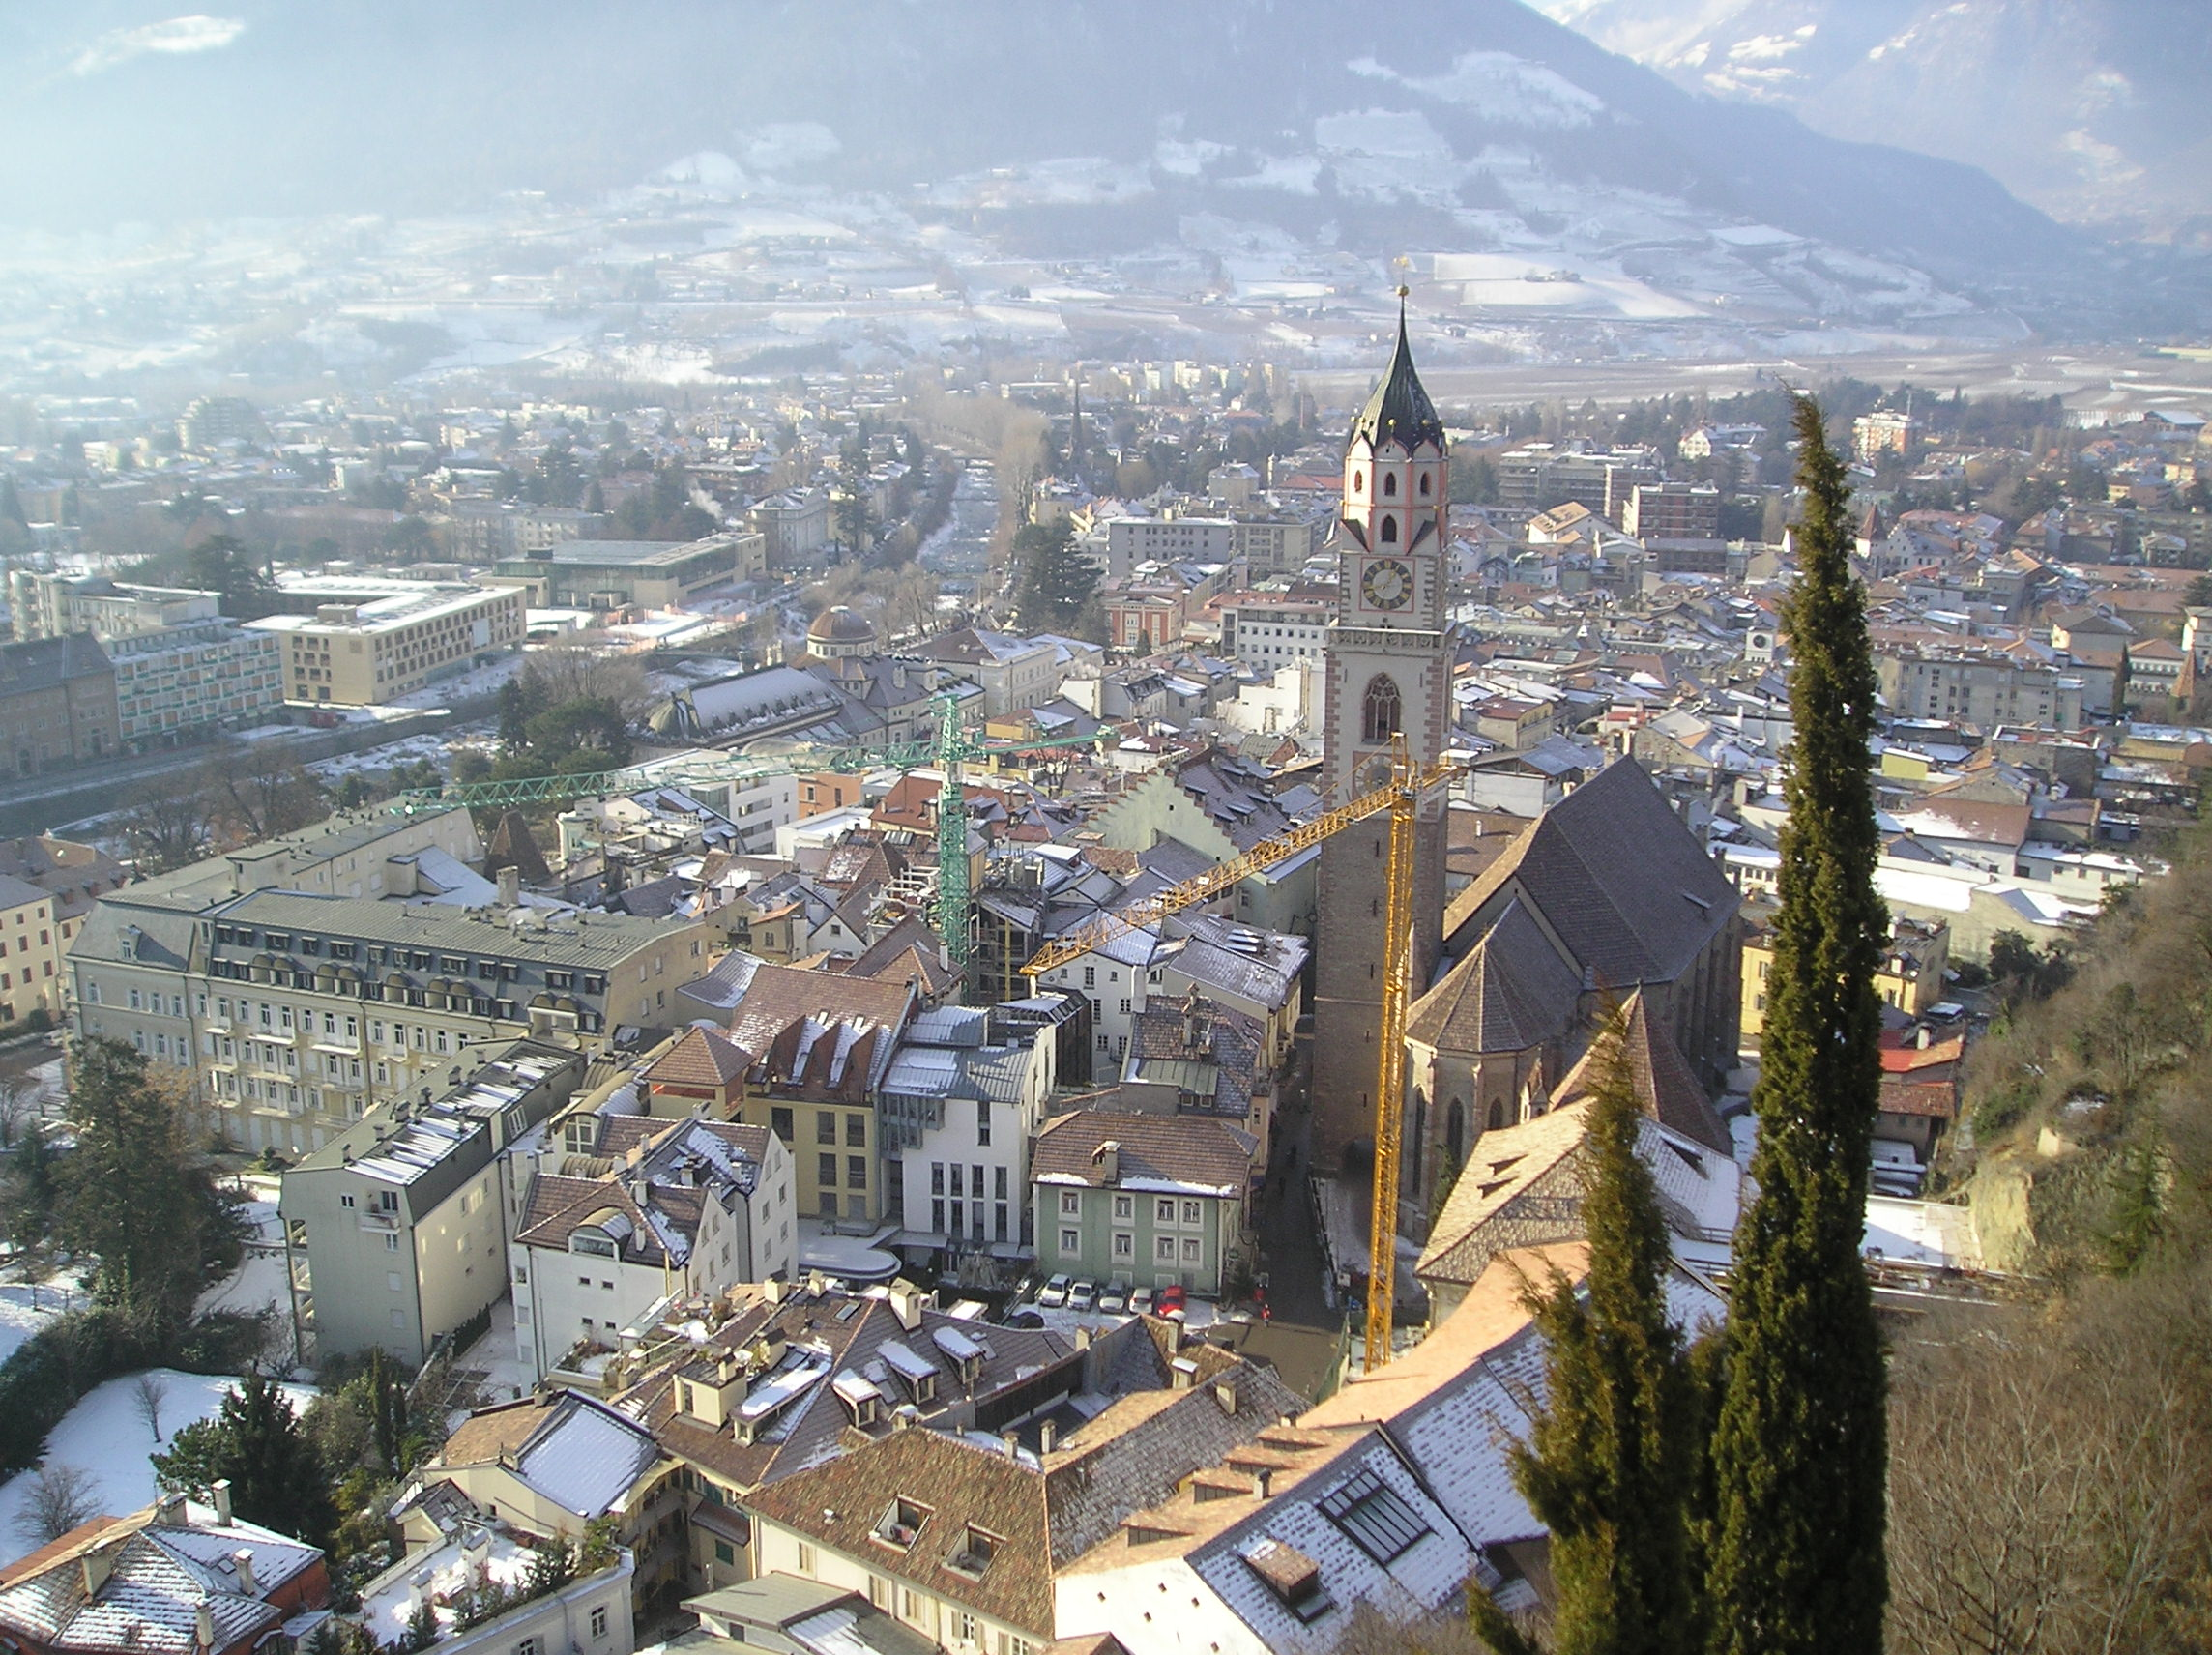 "Merano - ""Merano inverno"" di G2 di Wikipedia in italiano - Trasferito da it.wikipedia su Commons da Rar utilizzando CommonsHelper.. Con licenza Pubblico dominio tramite Wikimedia Commons - https://commons.wikimedia.org/wiki/File:Merano_inverno.jpg#/media/File:Merano_inverno.jpg"